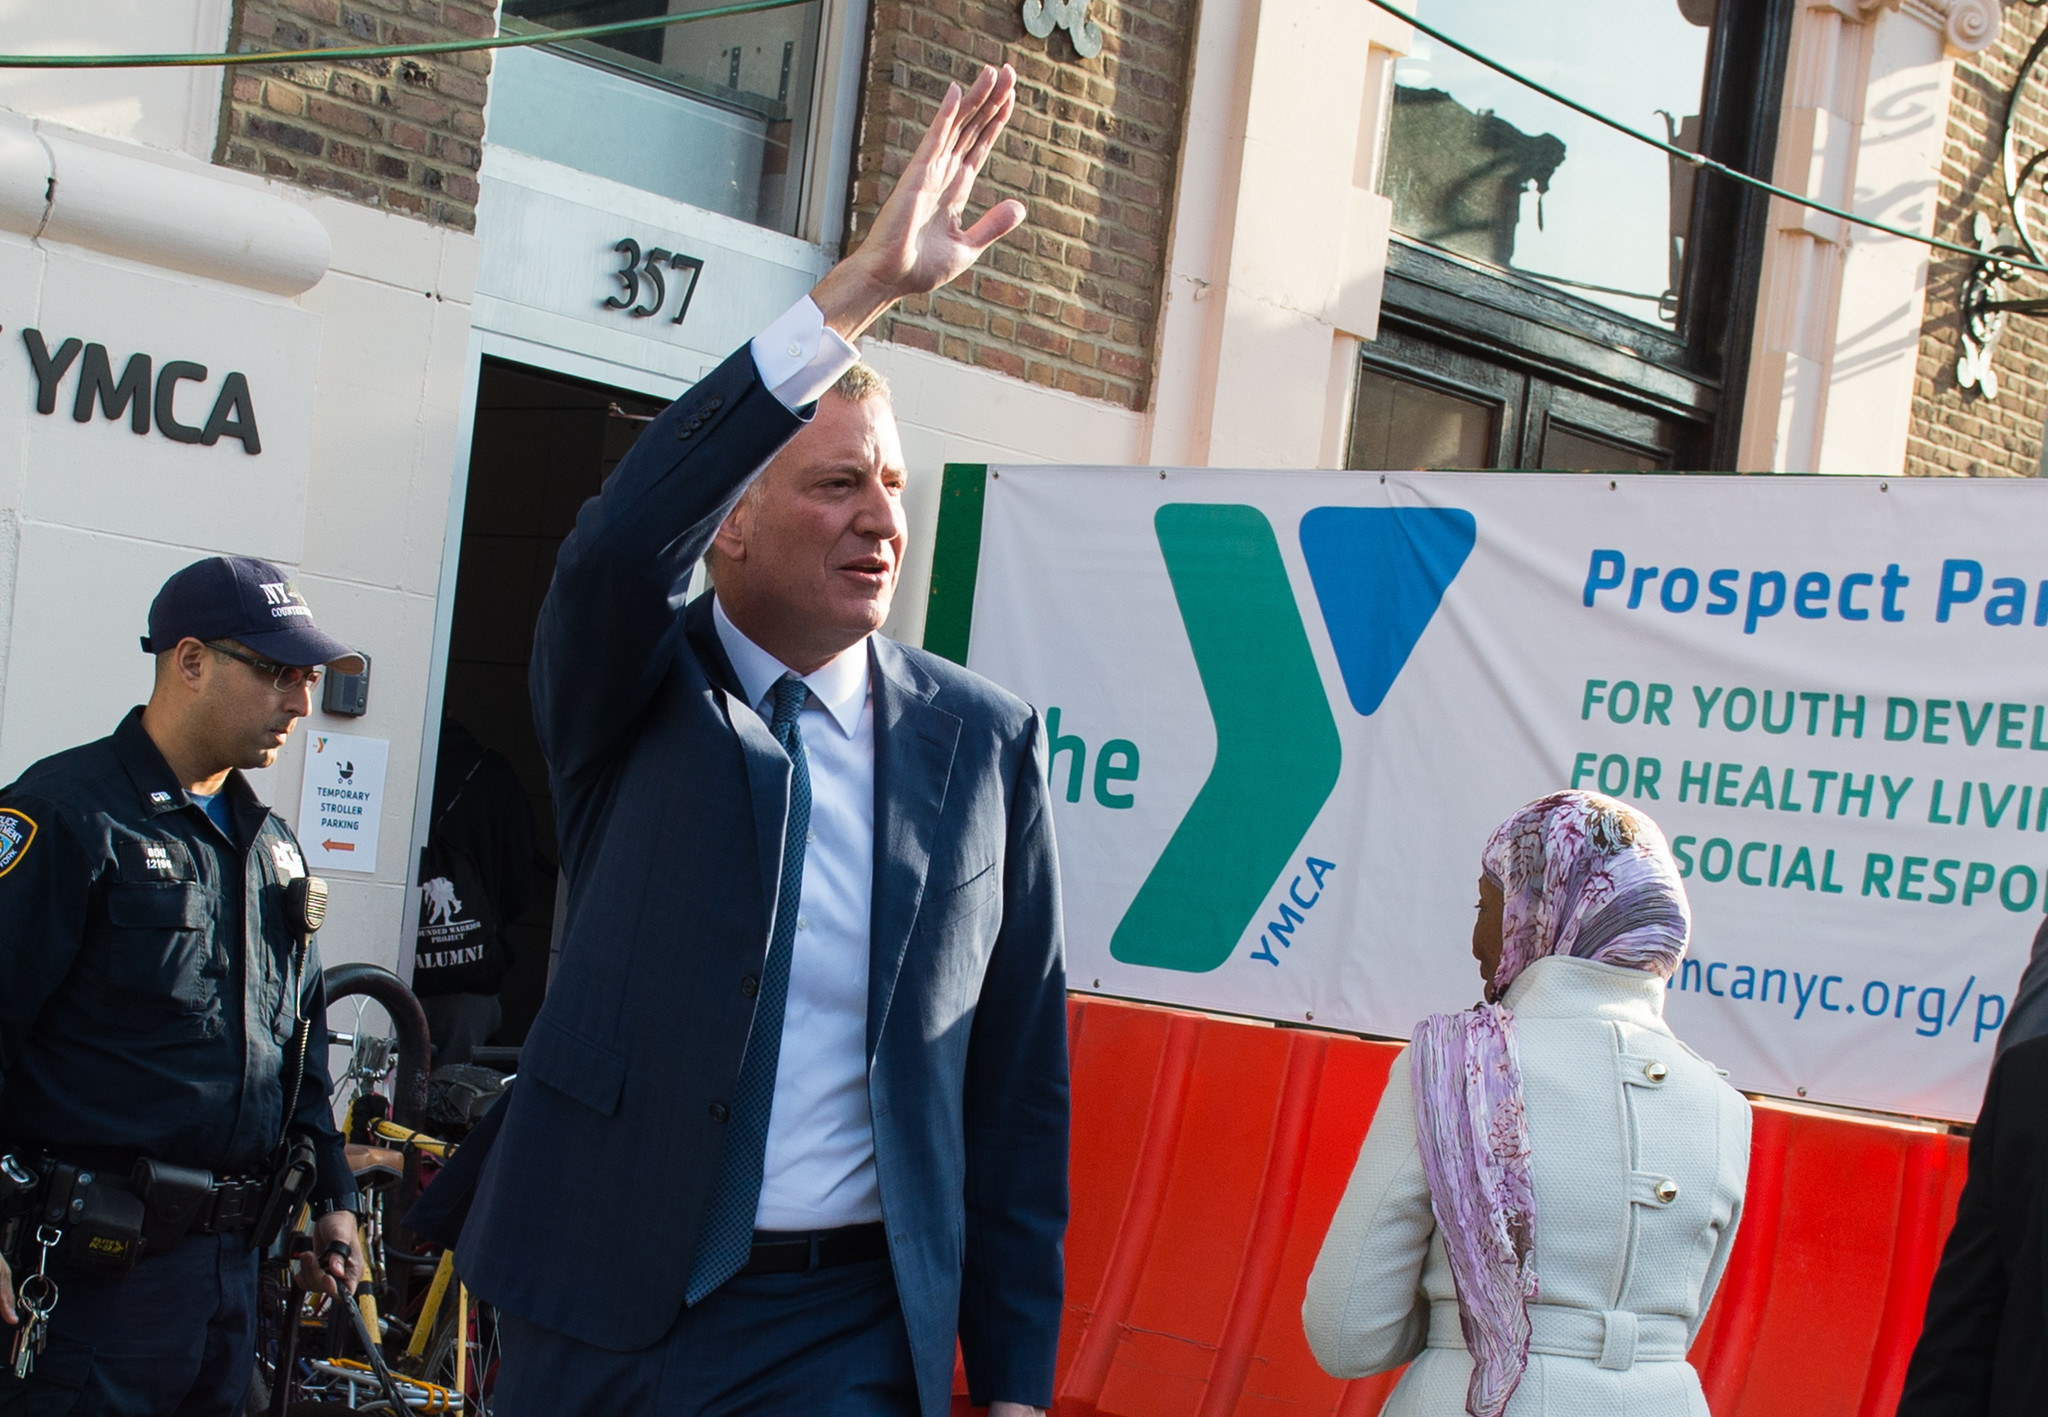 Bill De Blasio says YMCA beats SoulCycle and its pro-Trump owner